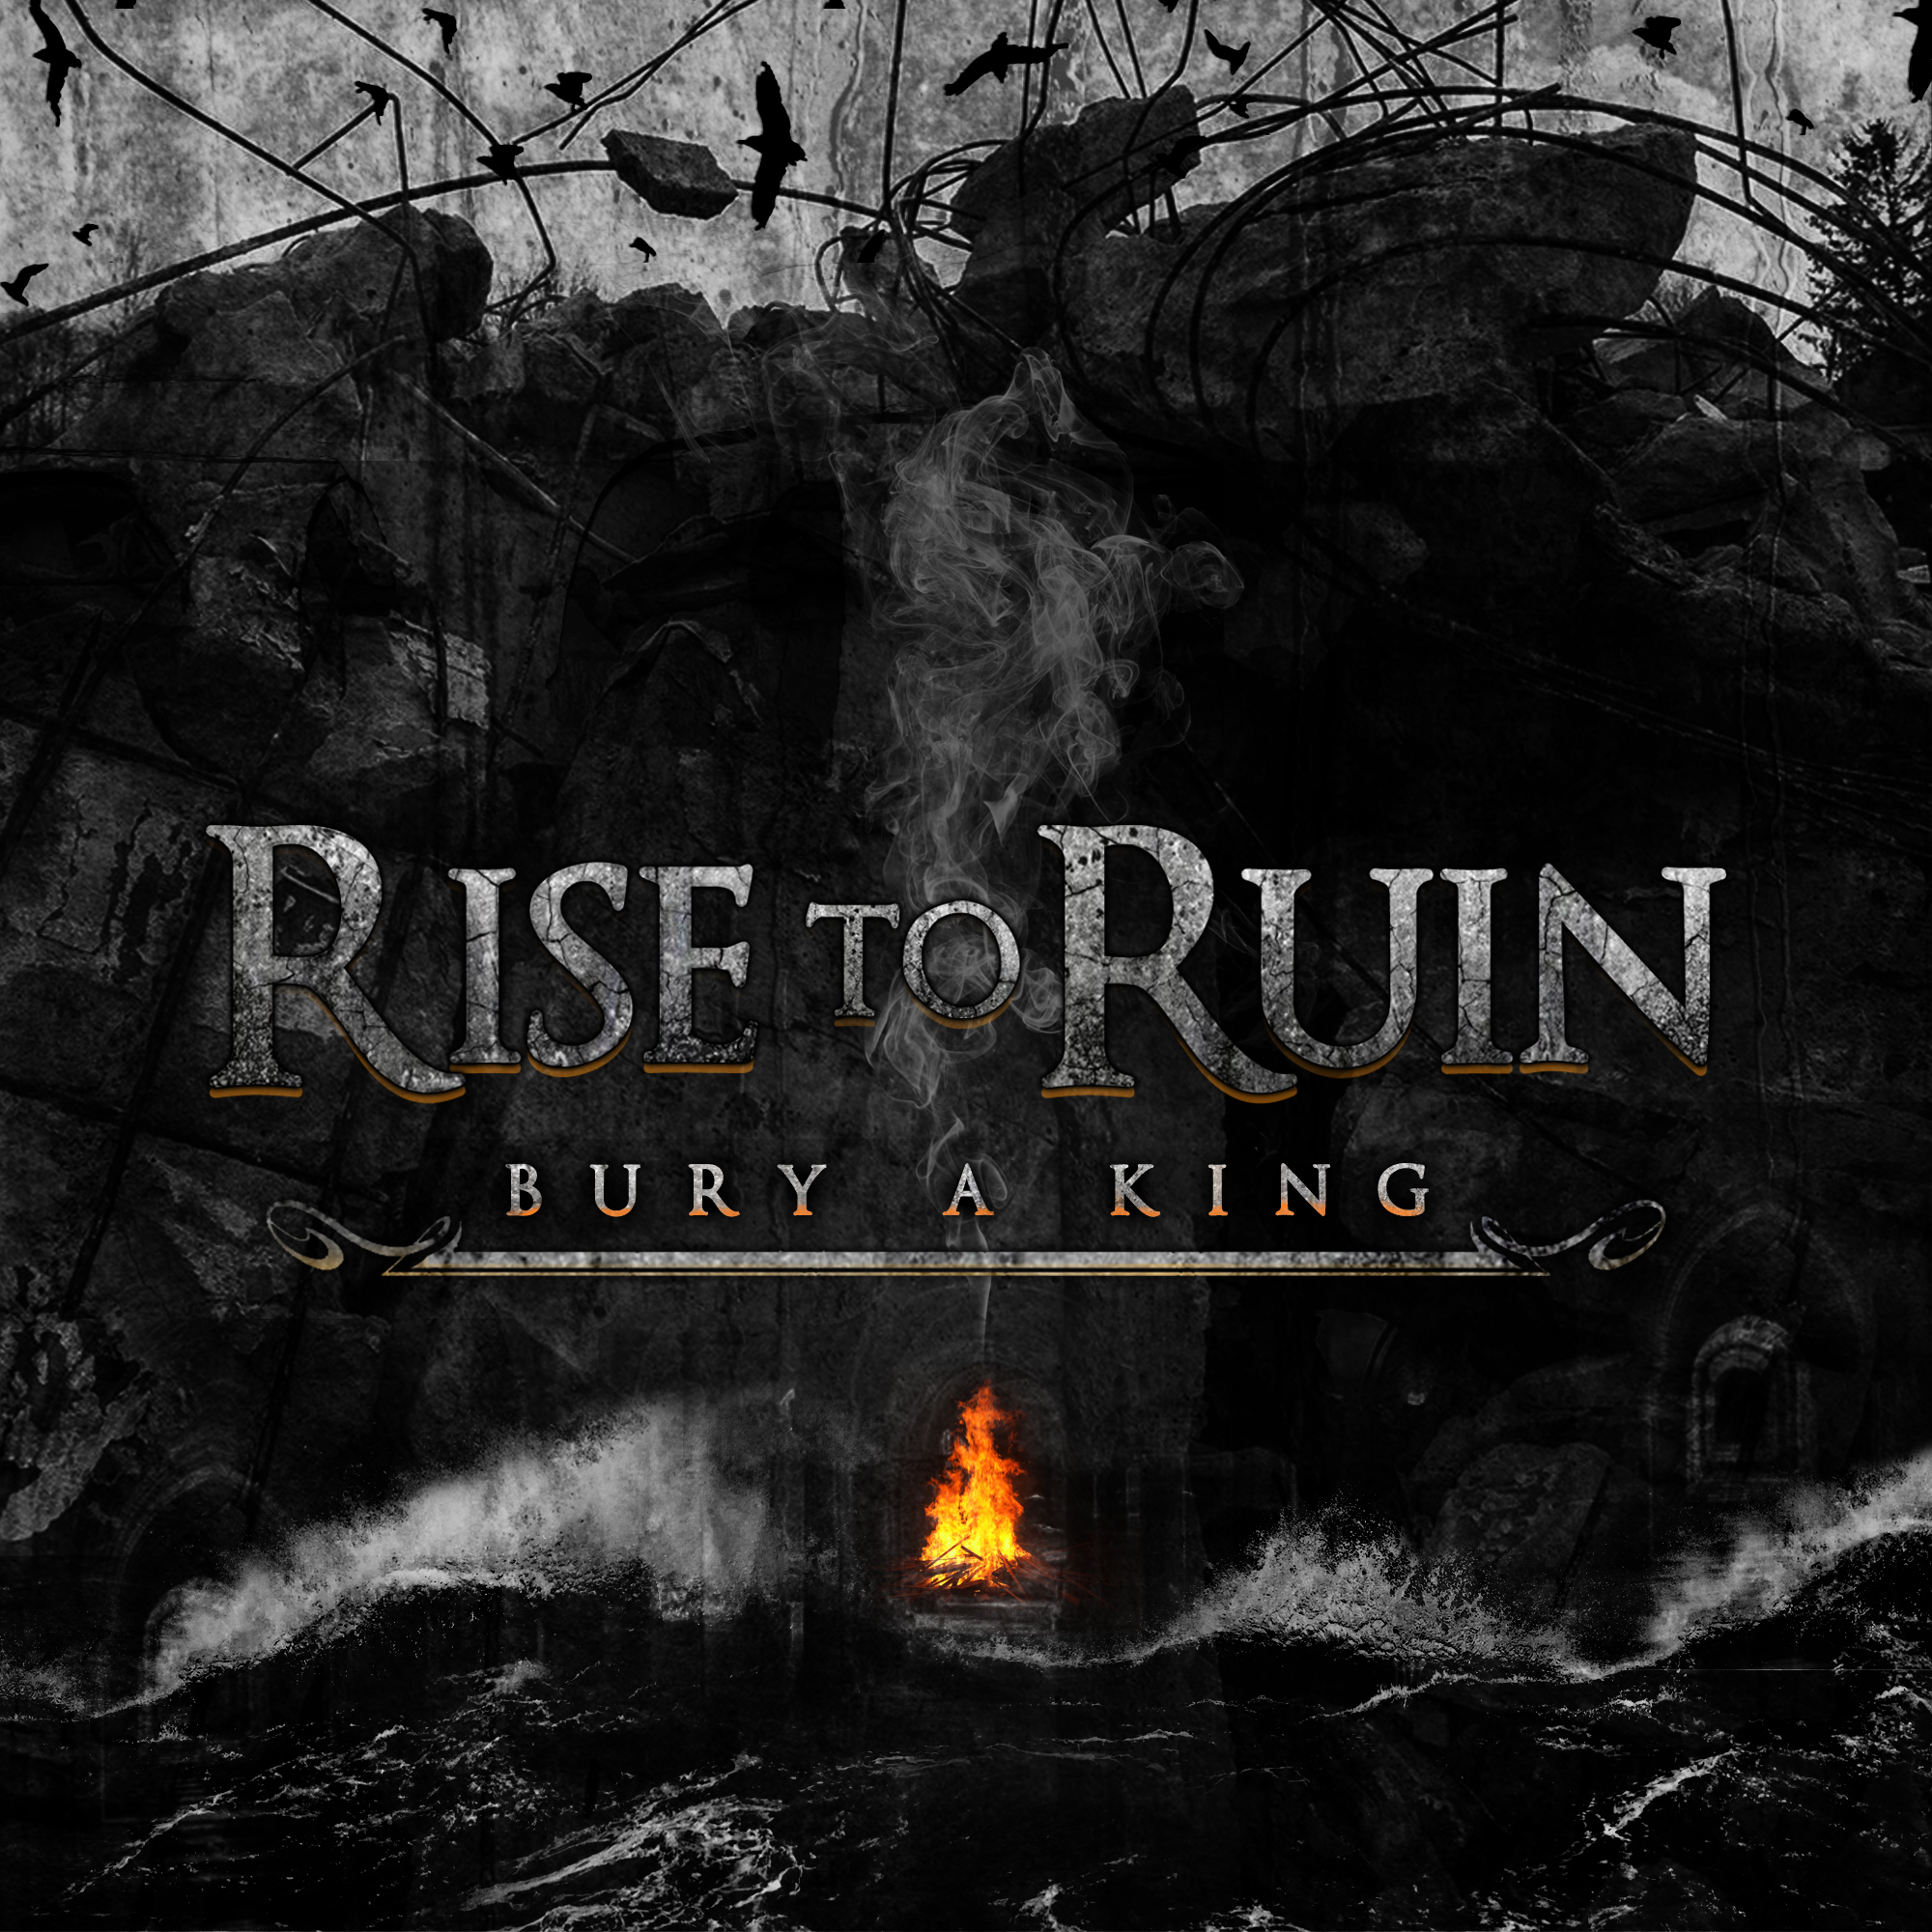 rise_to_ruin_bury_a_king_cover.jpg